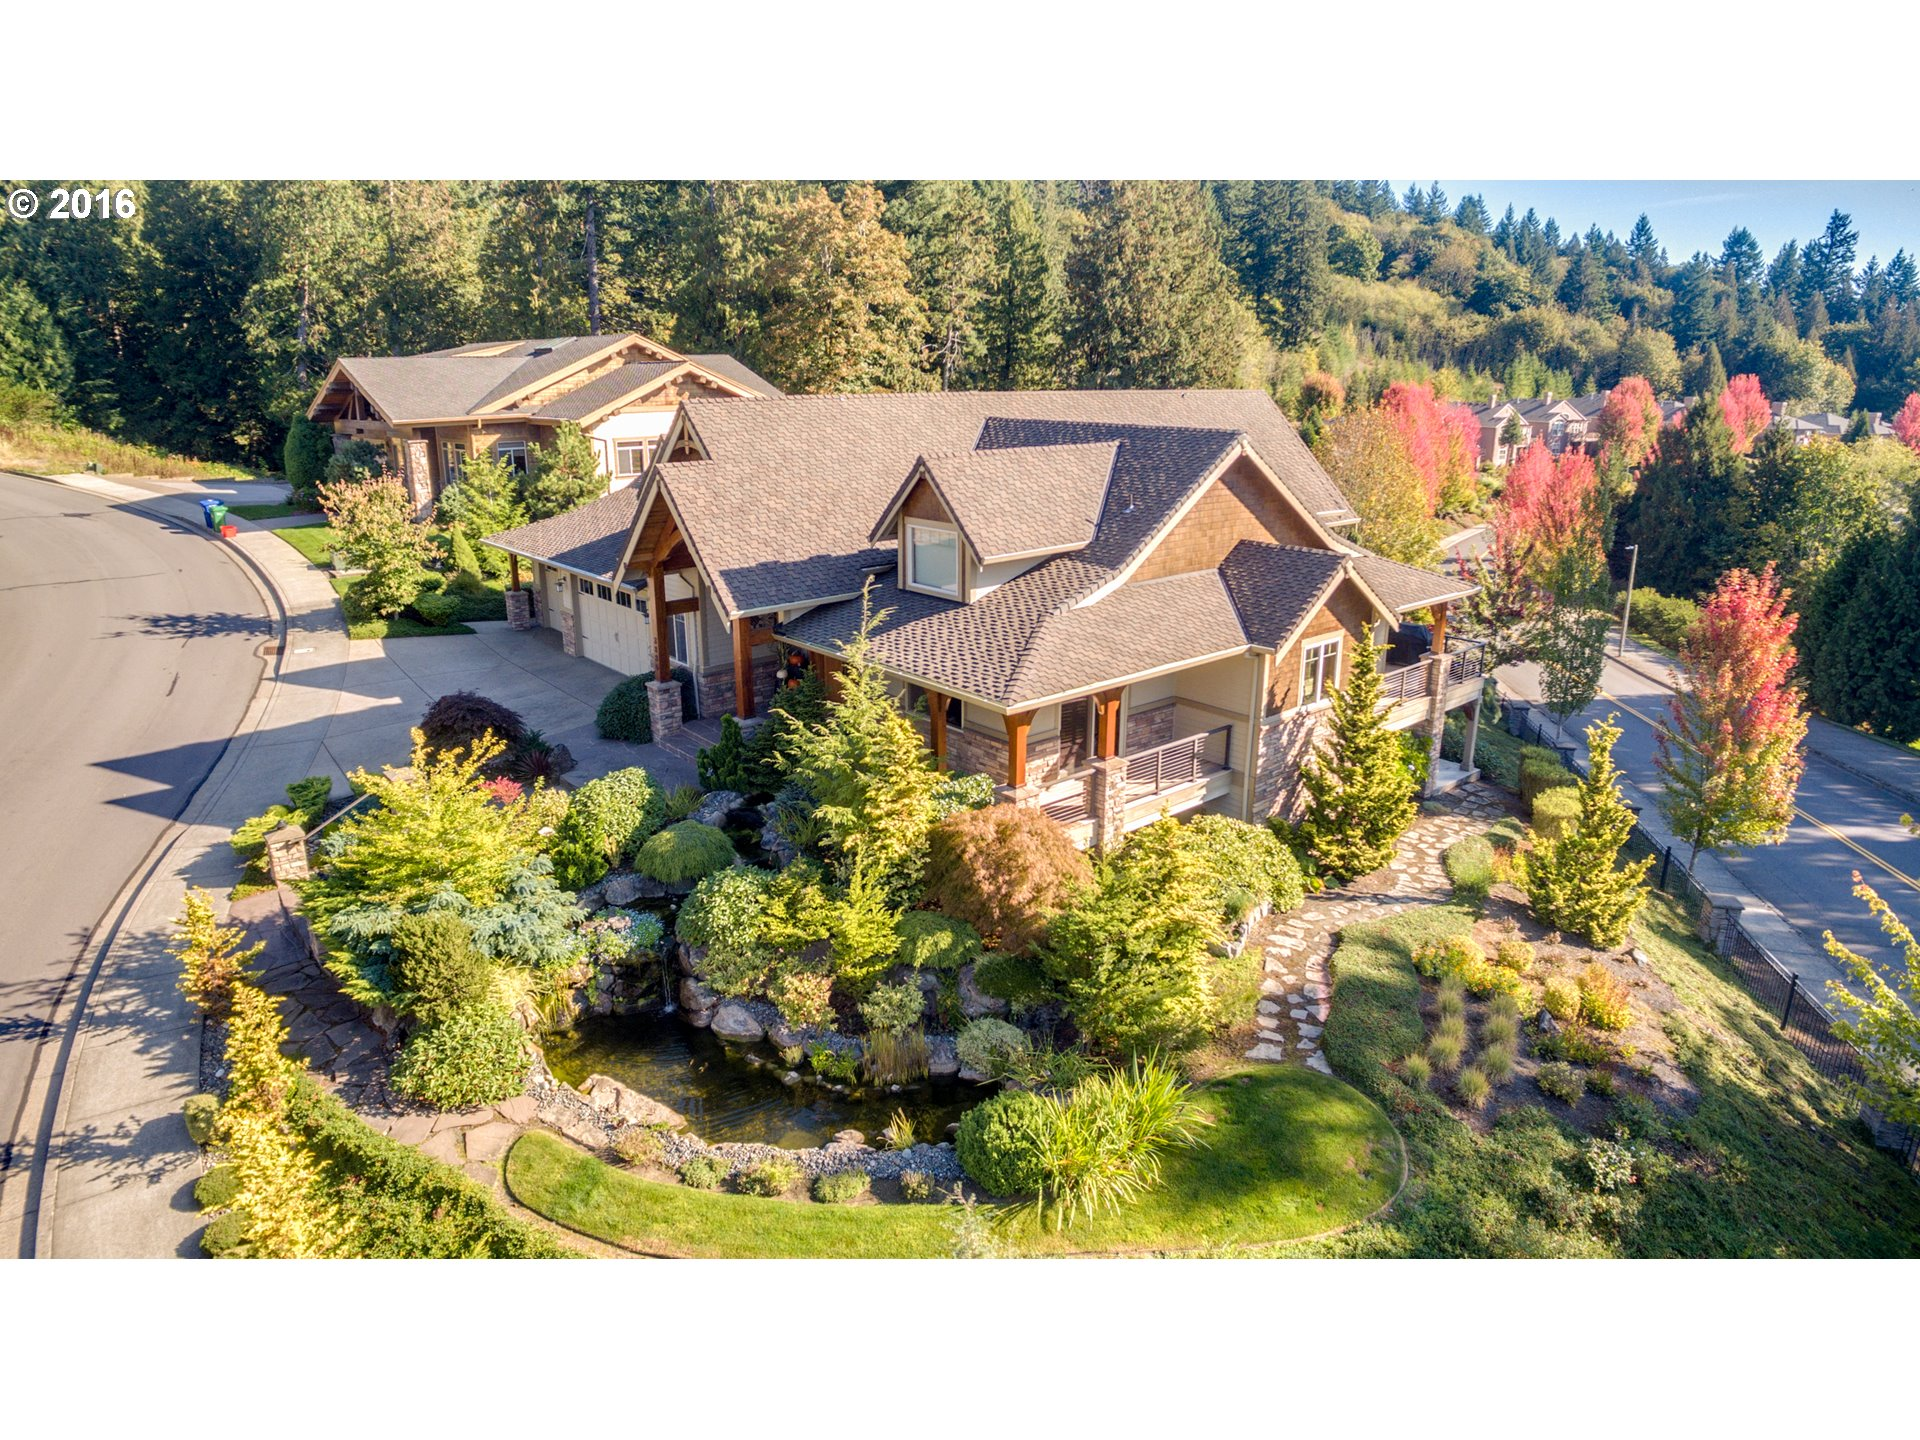 3880 SE DEER CREEK WAY, Gresham, OR 97080